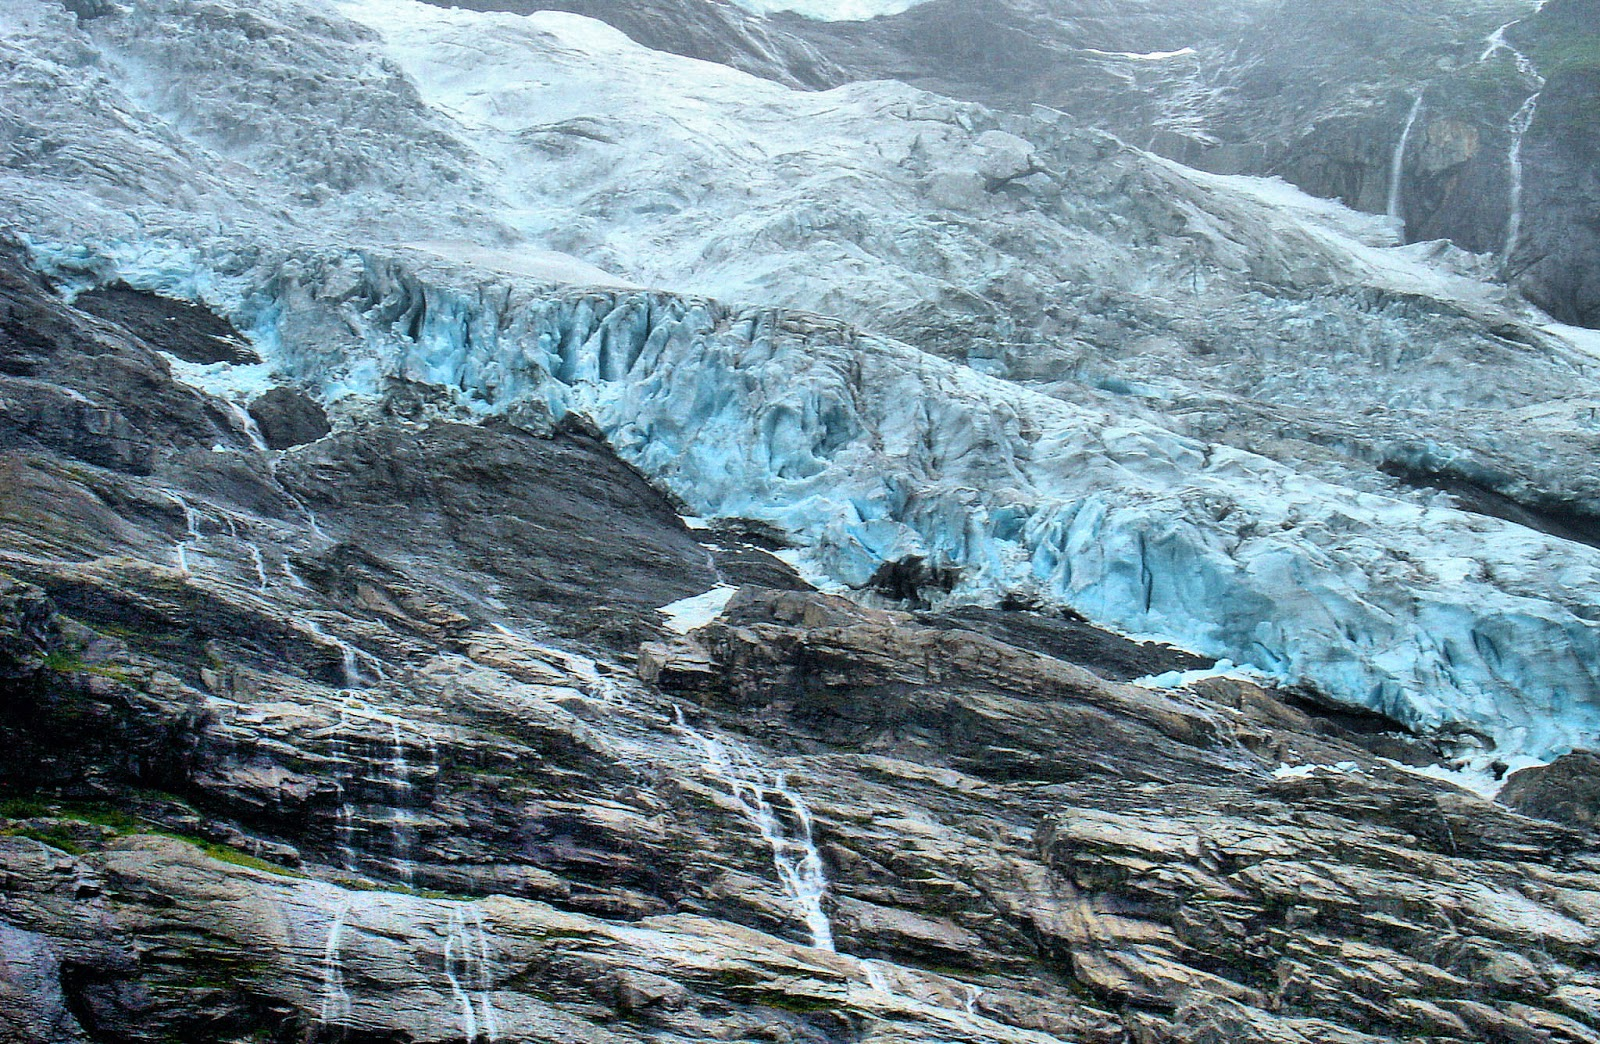 The Bøyabreen Glacier.